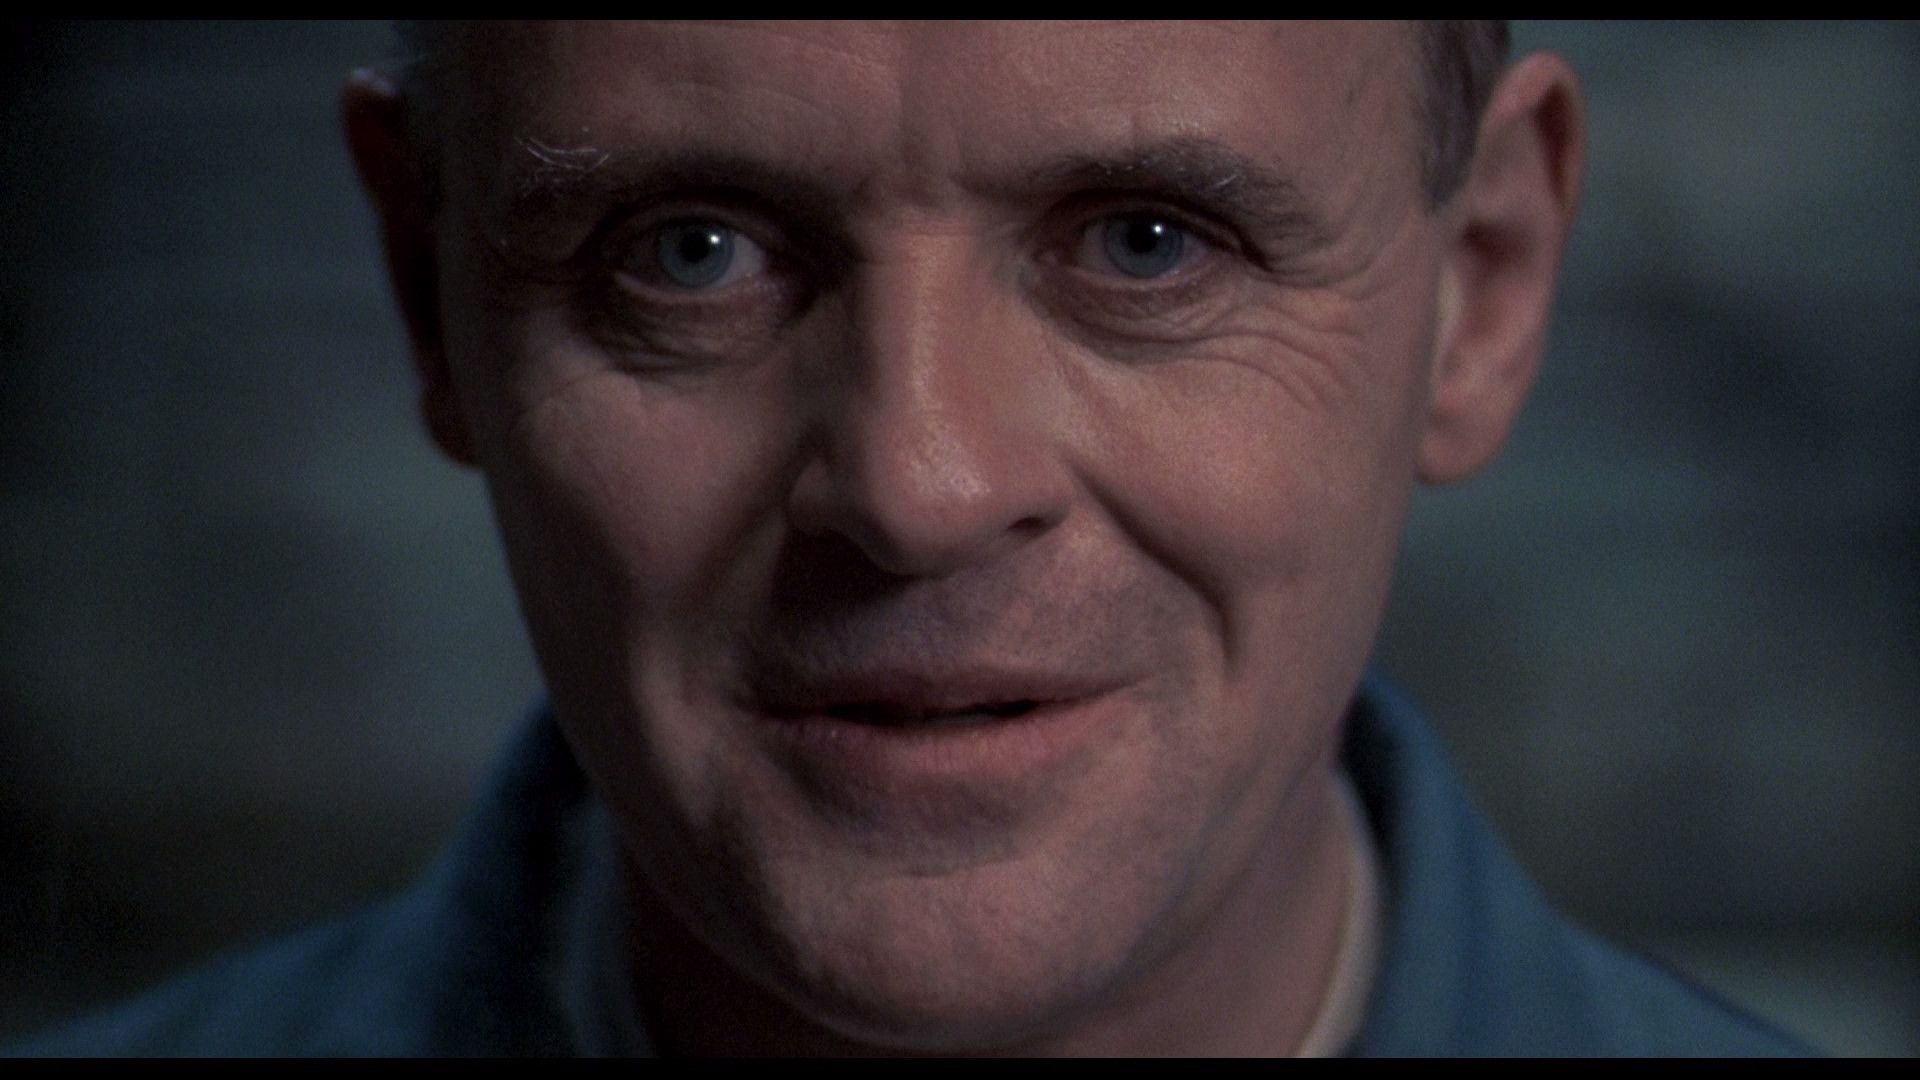 Hannibal Lecter Cannibal